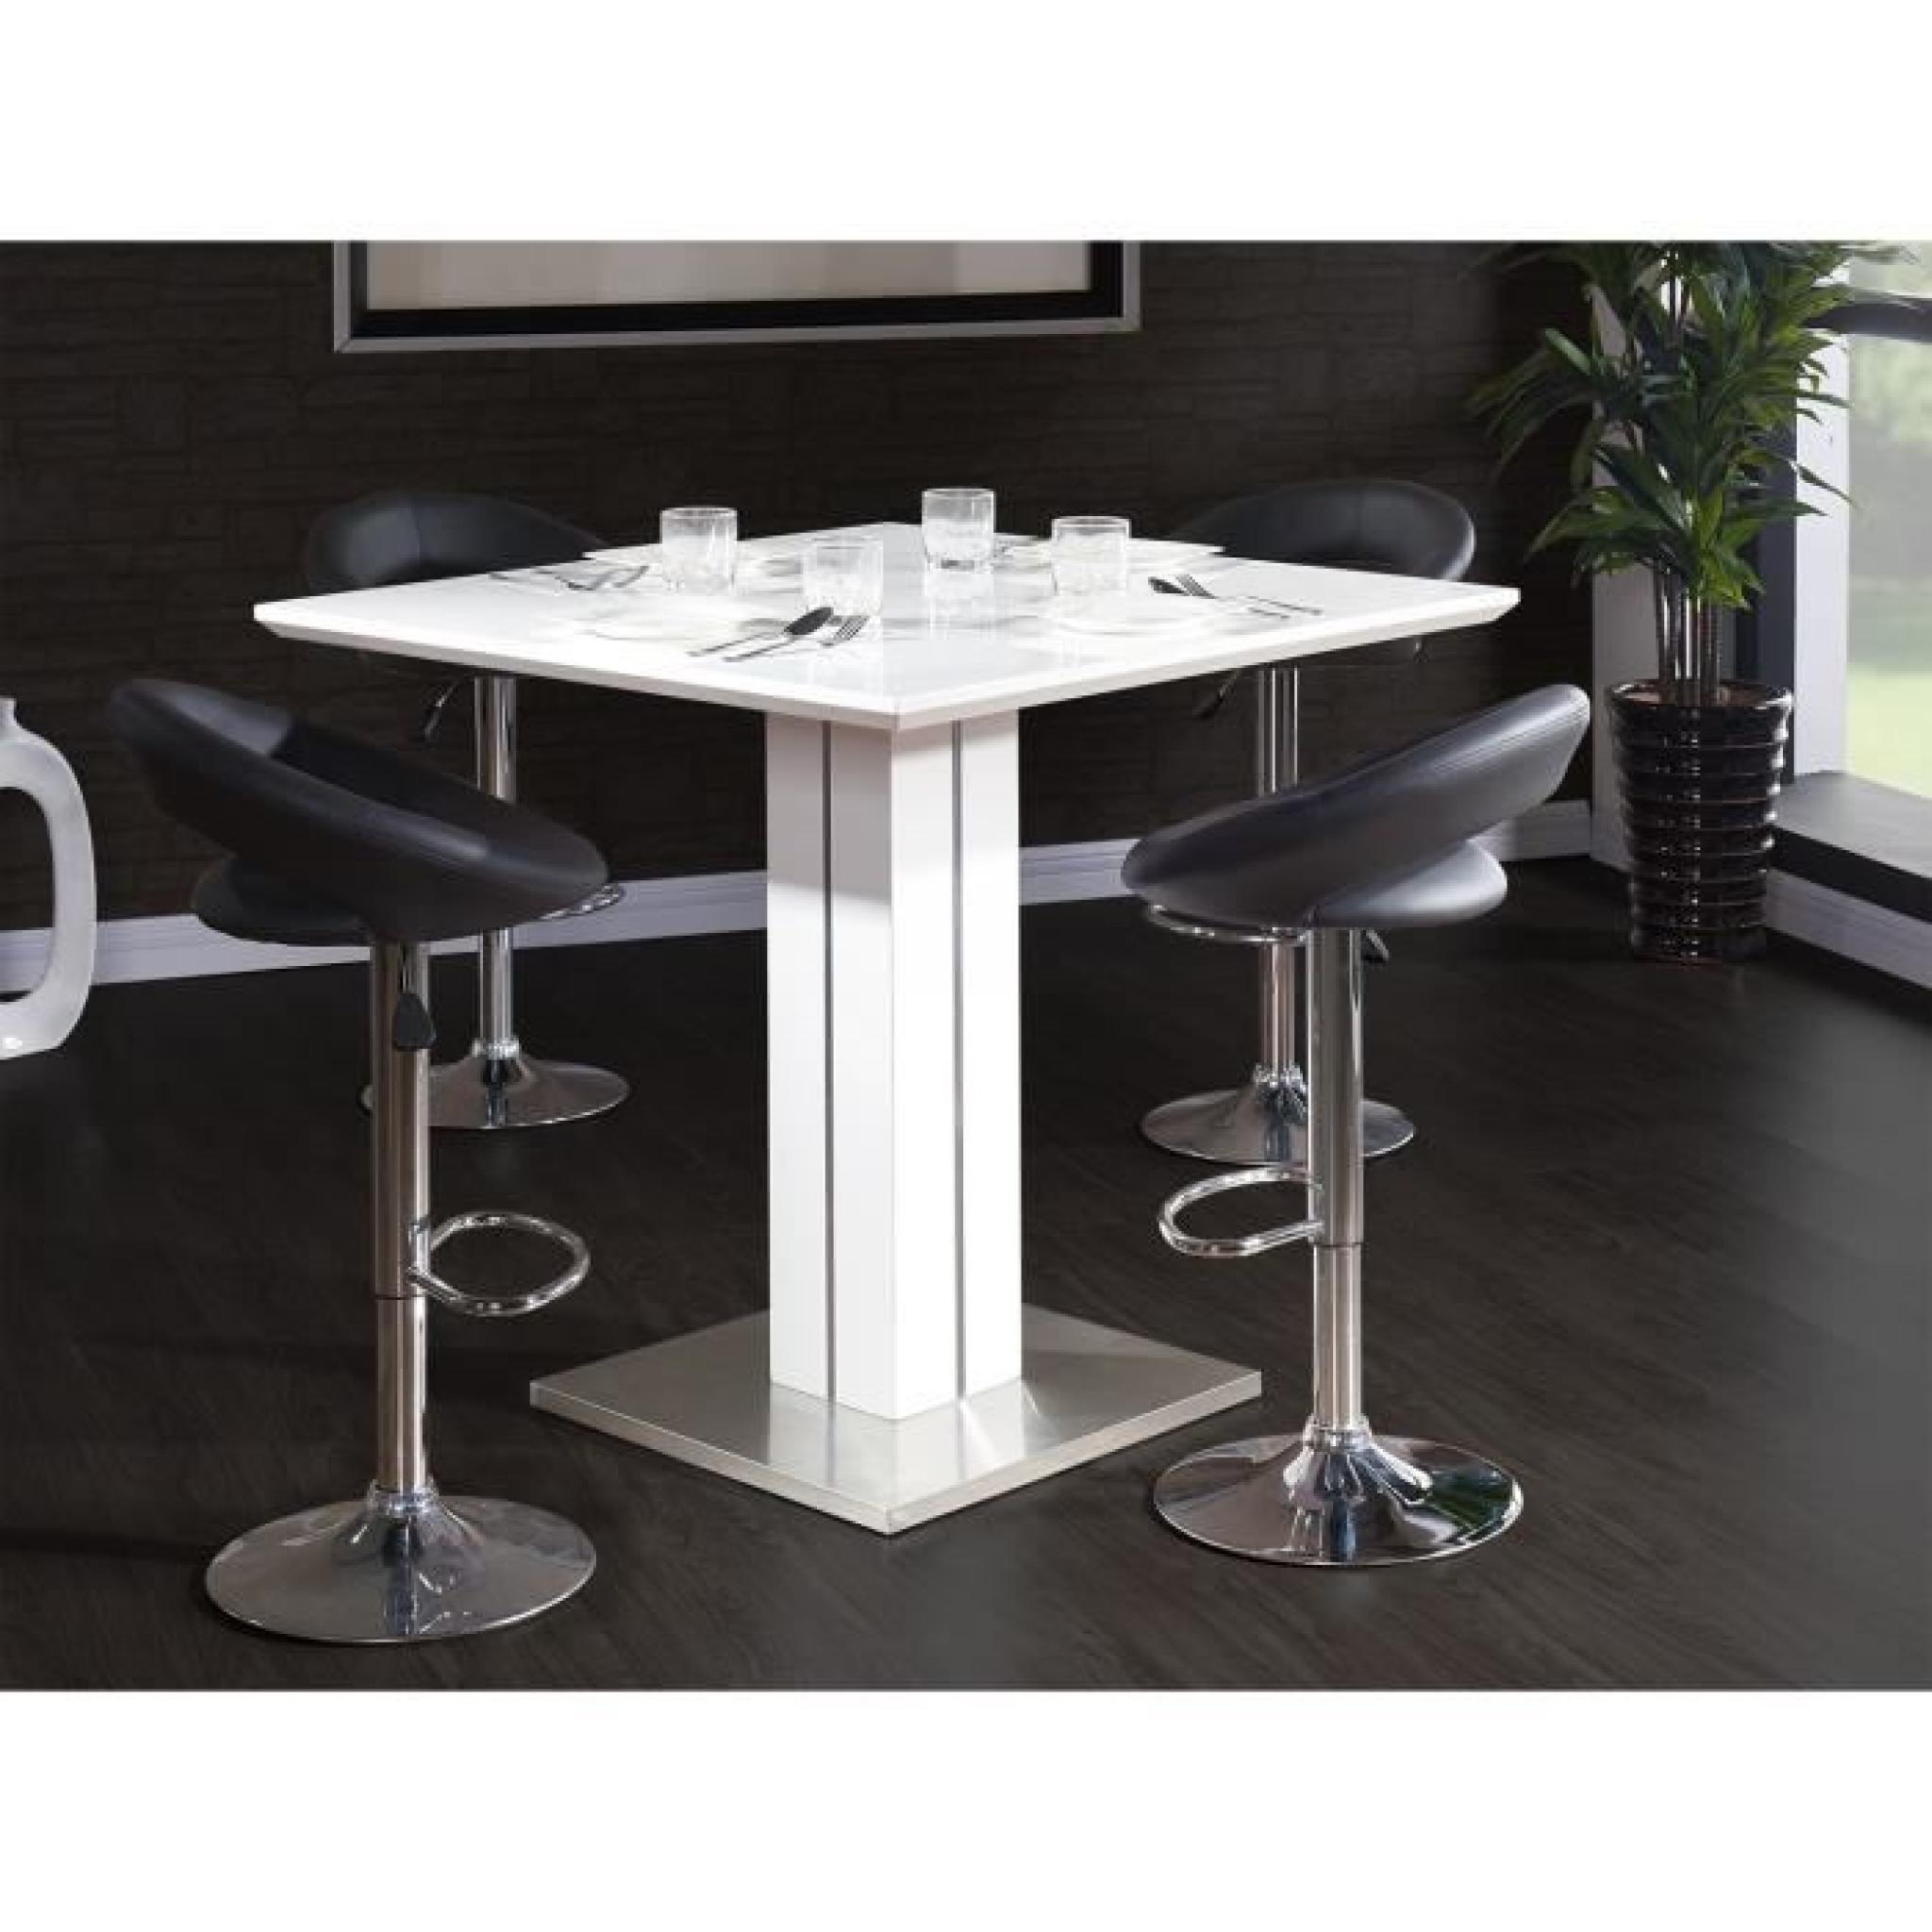 Table de salle a manger blanc laqu pas cher table de for Table de salle a manger chez but